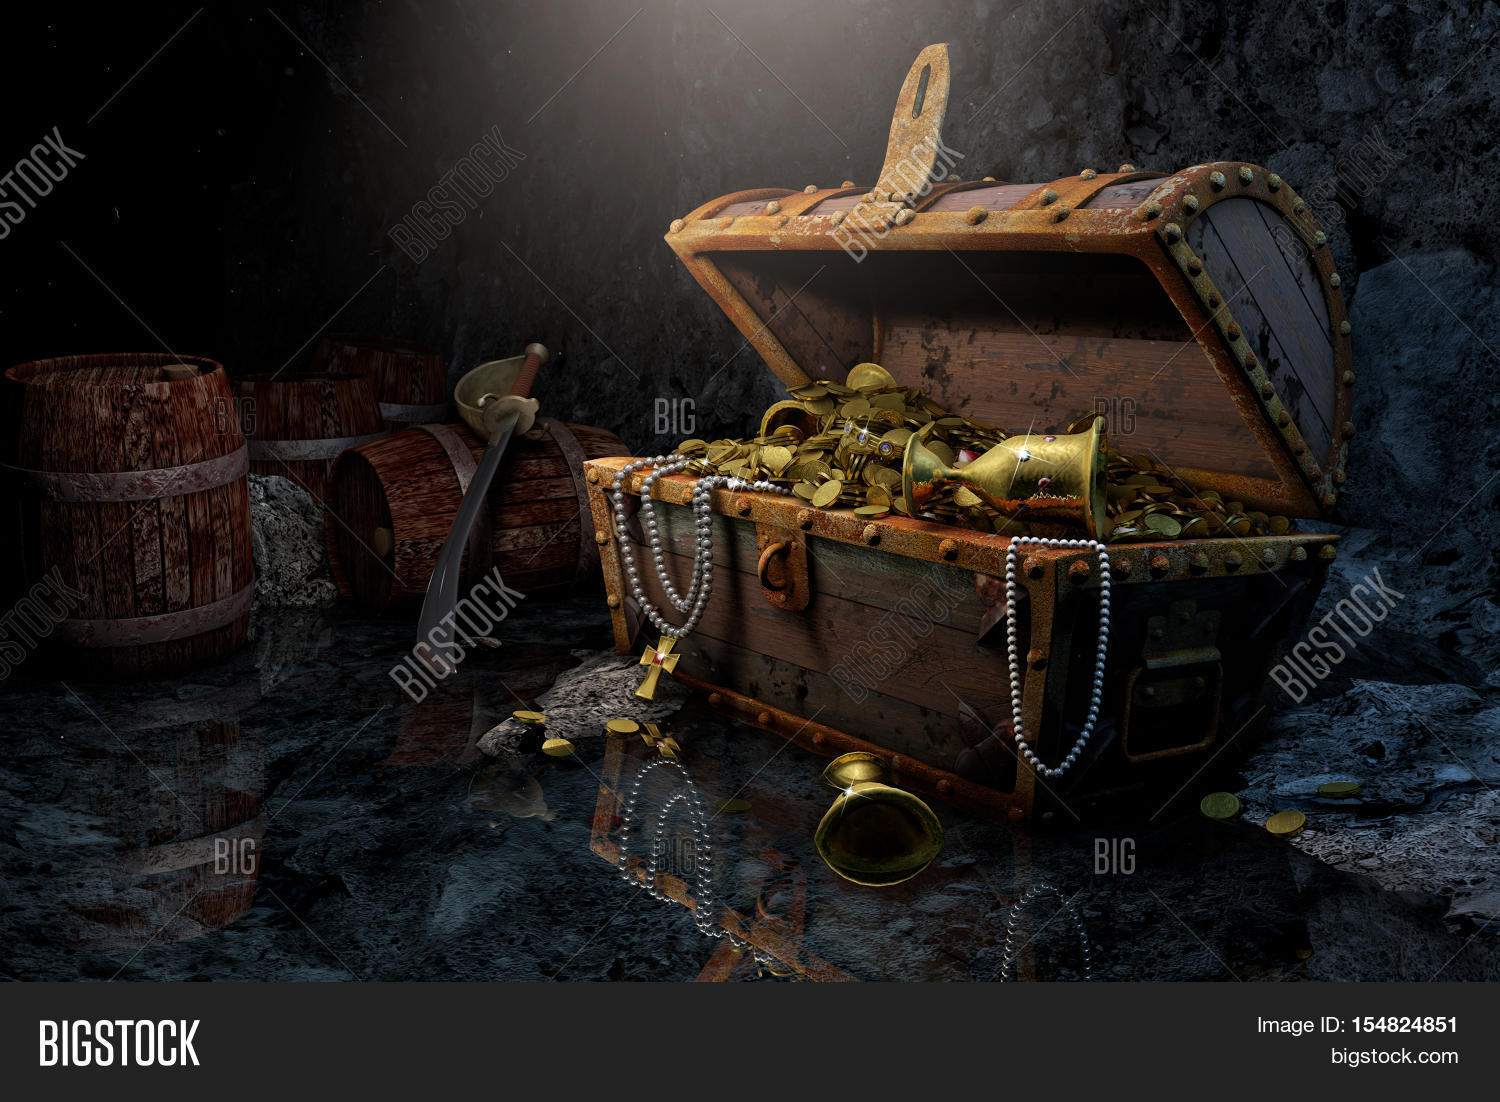 Old Pirate's Chest Image & Photo (Free Trial) | Bigstock